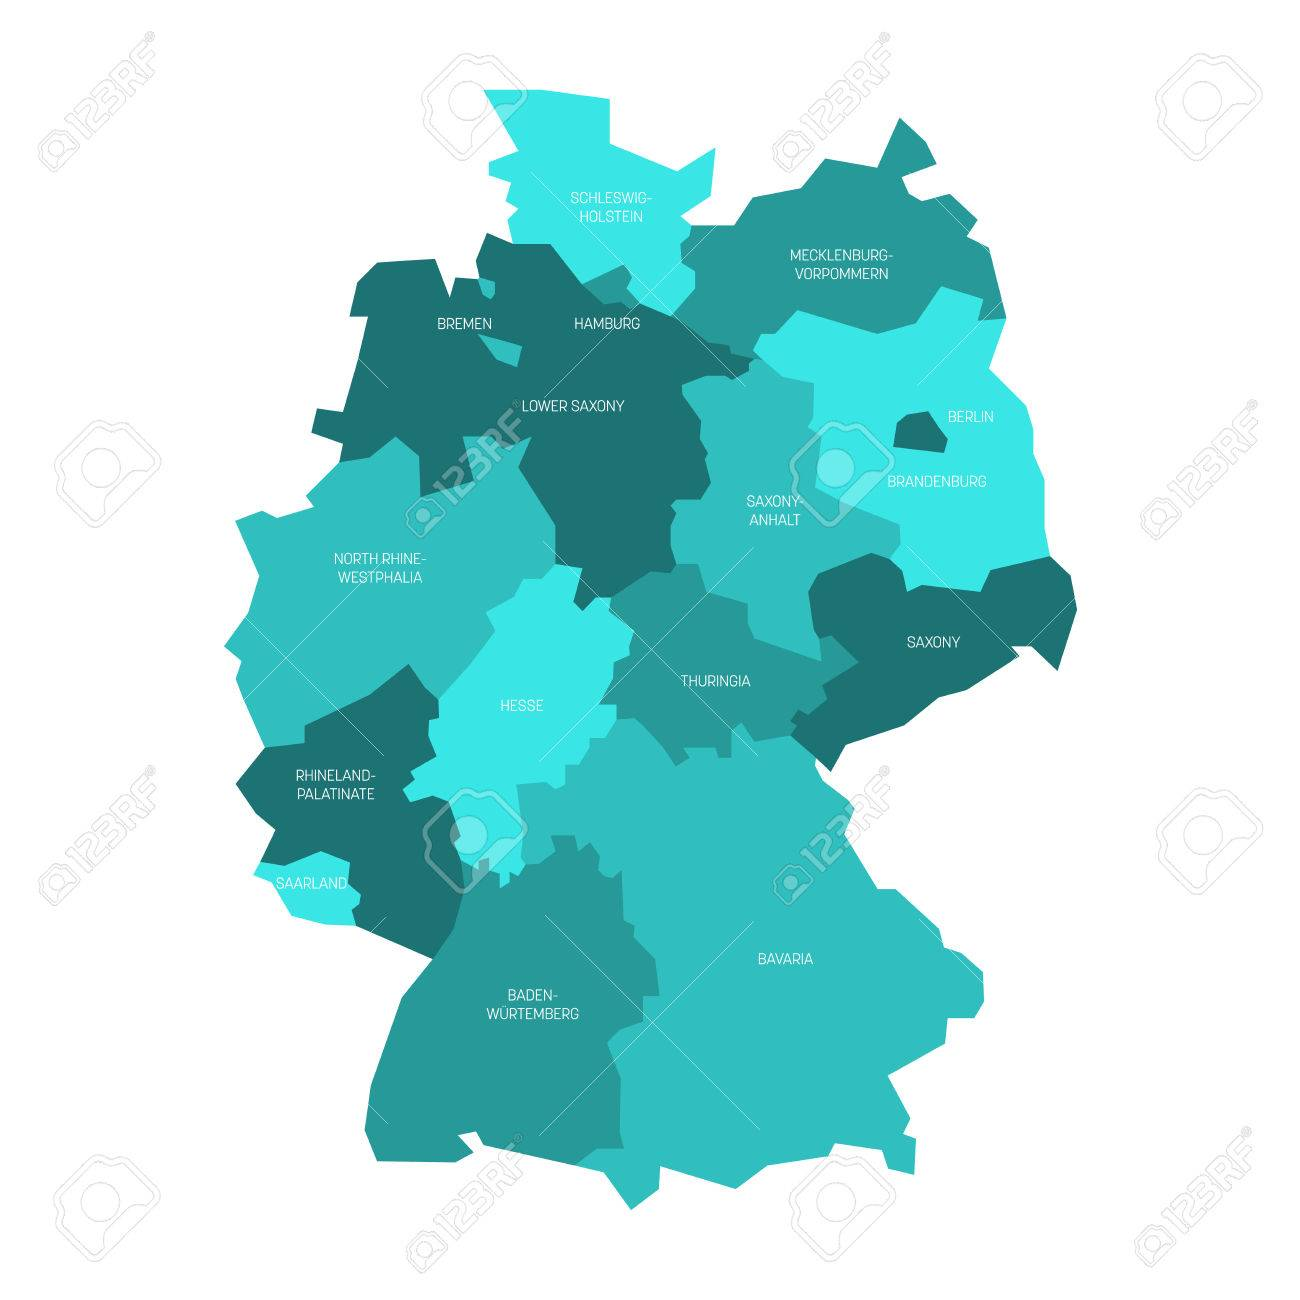 Map of Germany devided to 13 federal states and 3 city-states.. Map Of Europe Hamburg on map of europe galicia, map of europe kiev, map of europe naples, map of europe wittenberg, map of europe germany, map of europe ireland, map of europe helsinki, map of europe athens, map of europe verdun, map of europe malta, map of europe belgrade, map of europe suez canal, map of europe heidelberg, map of europe alsace, map of europe reykjavik, map of europe york, map of europe silesia, map of europe luxembourg, map of europe zagreb, map of europe genoa,